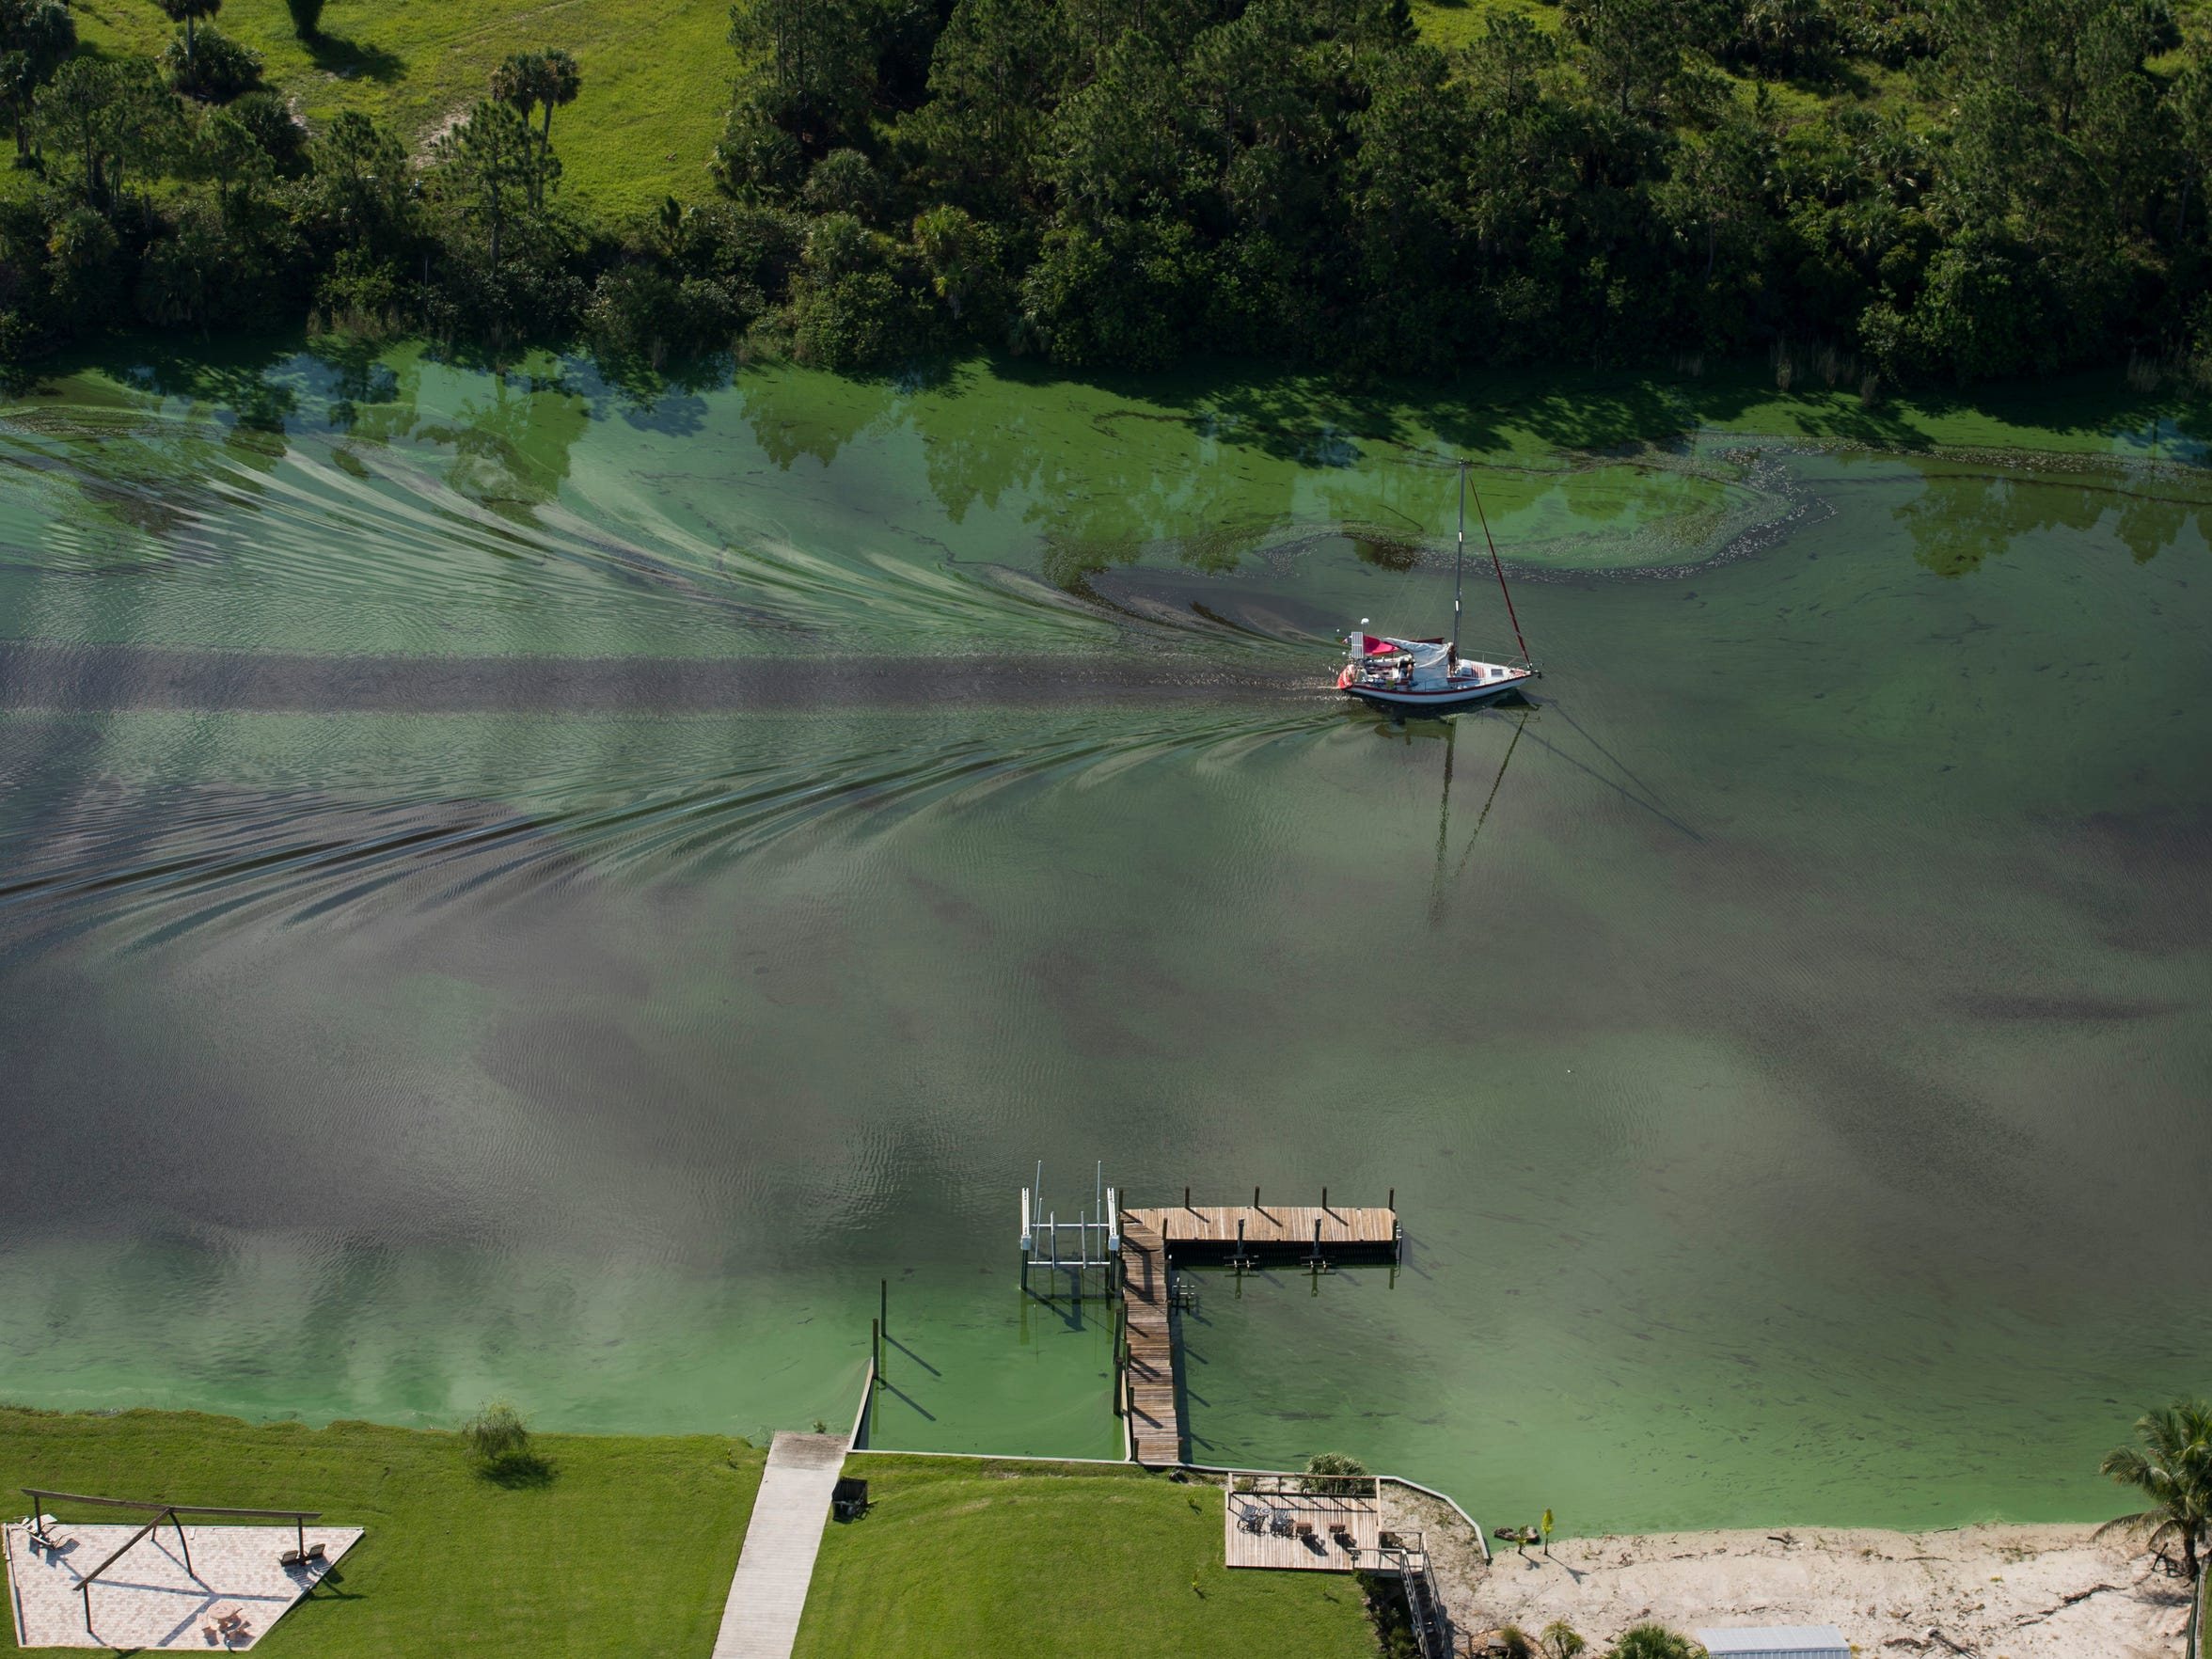 A sailboat travels through the algae-infested water of the C-44 Canal on Thursday in Martin County. Since June 1, about 25 billion gallons of Lake Okeechobee water has been discharged from the gates at the St. Lucie Lock and Dam into the St. Lucie River, concerning residents and damaging local businesses.